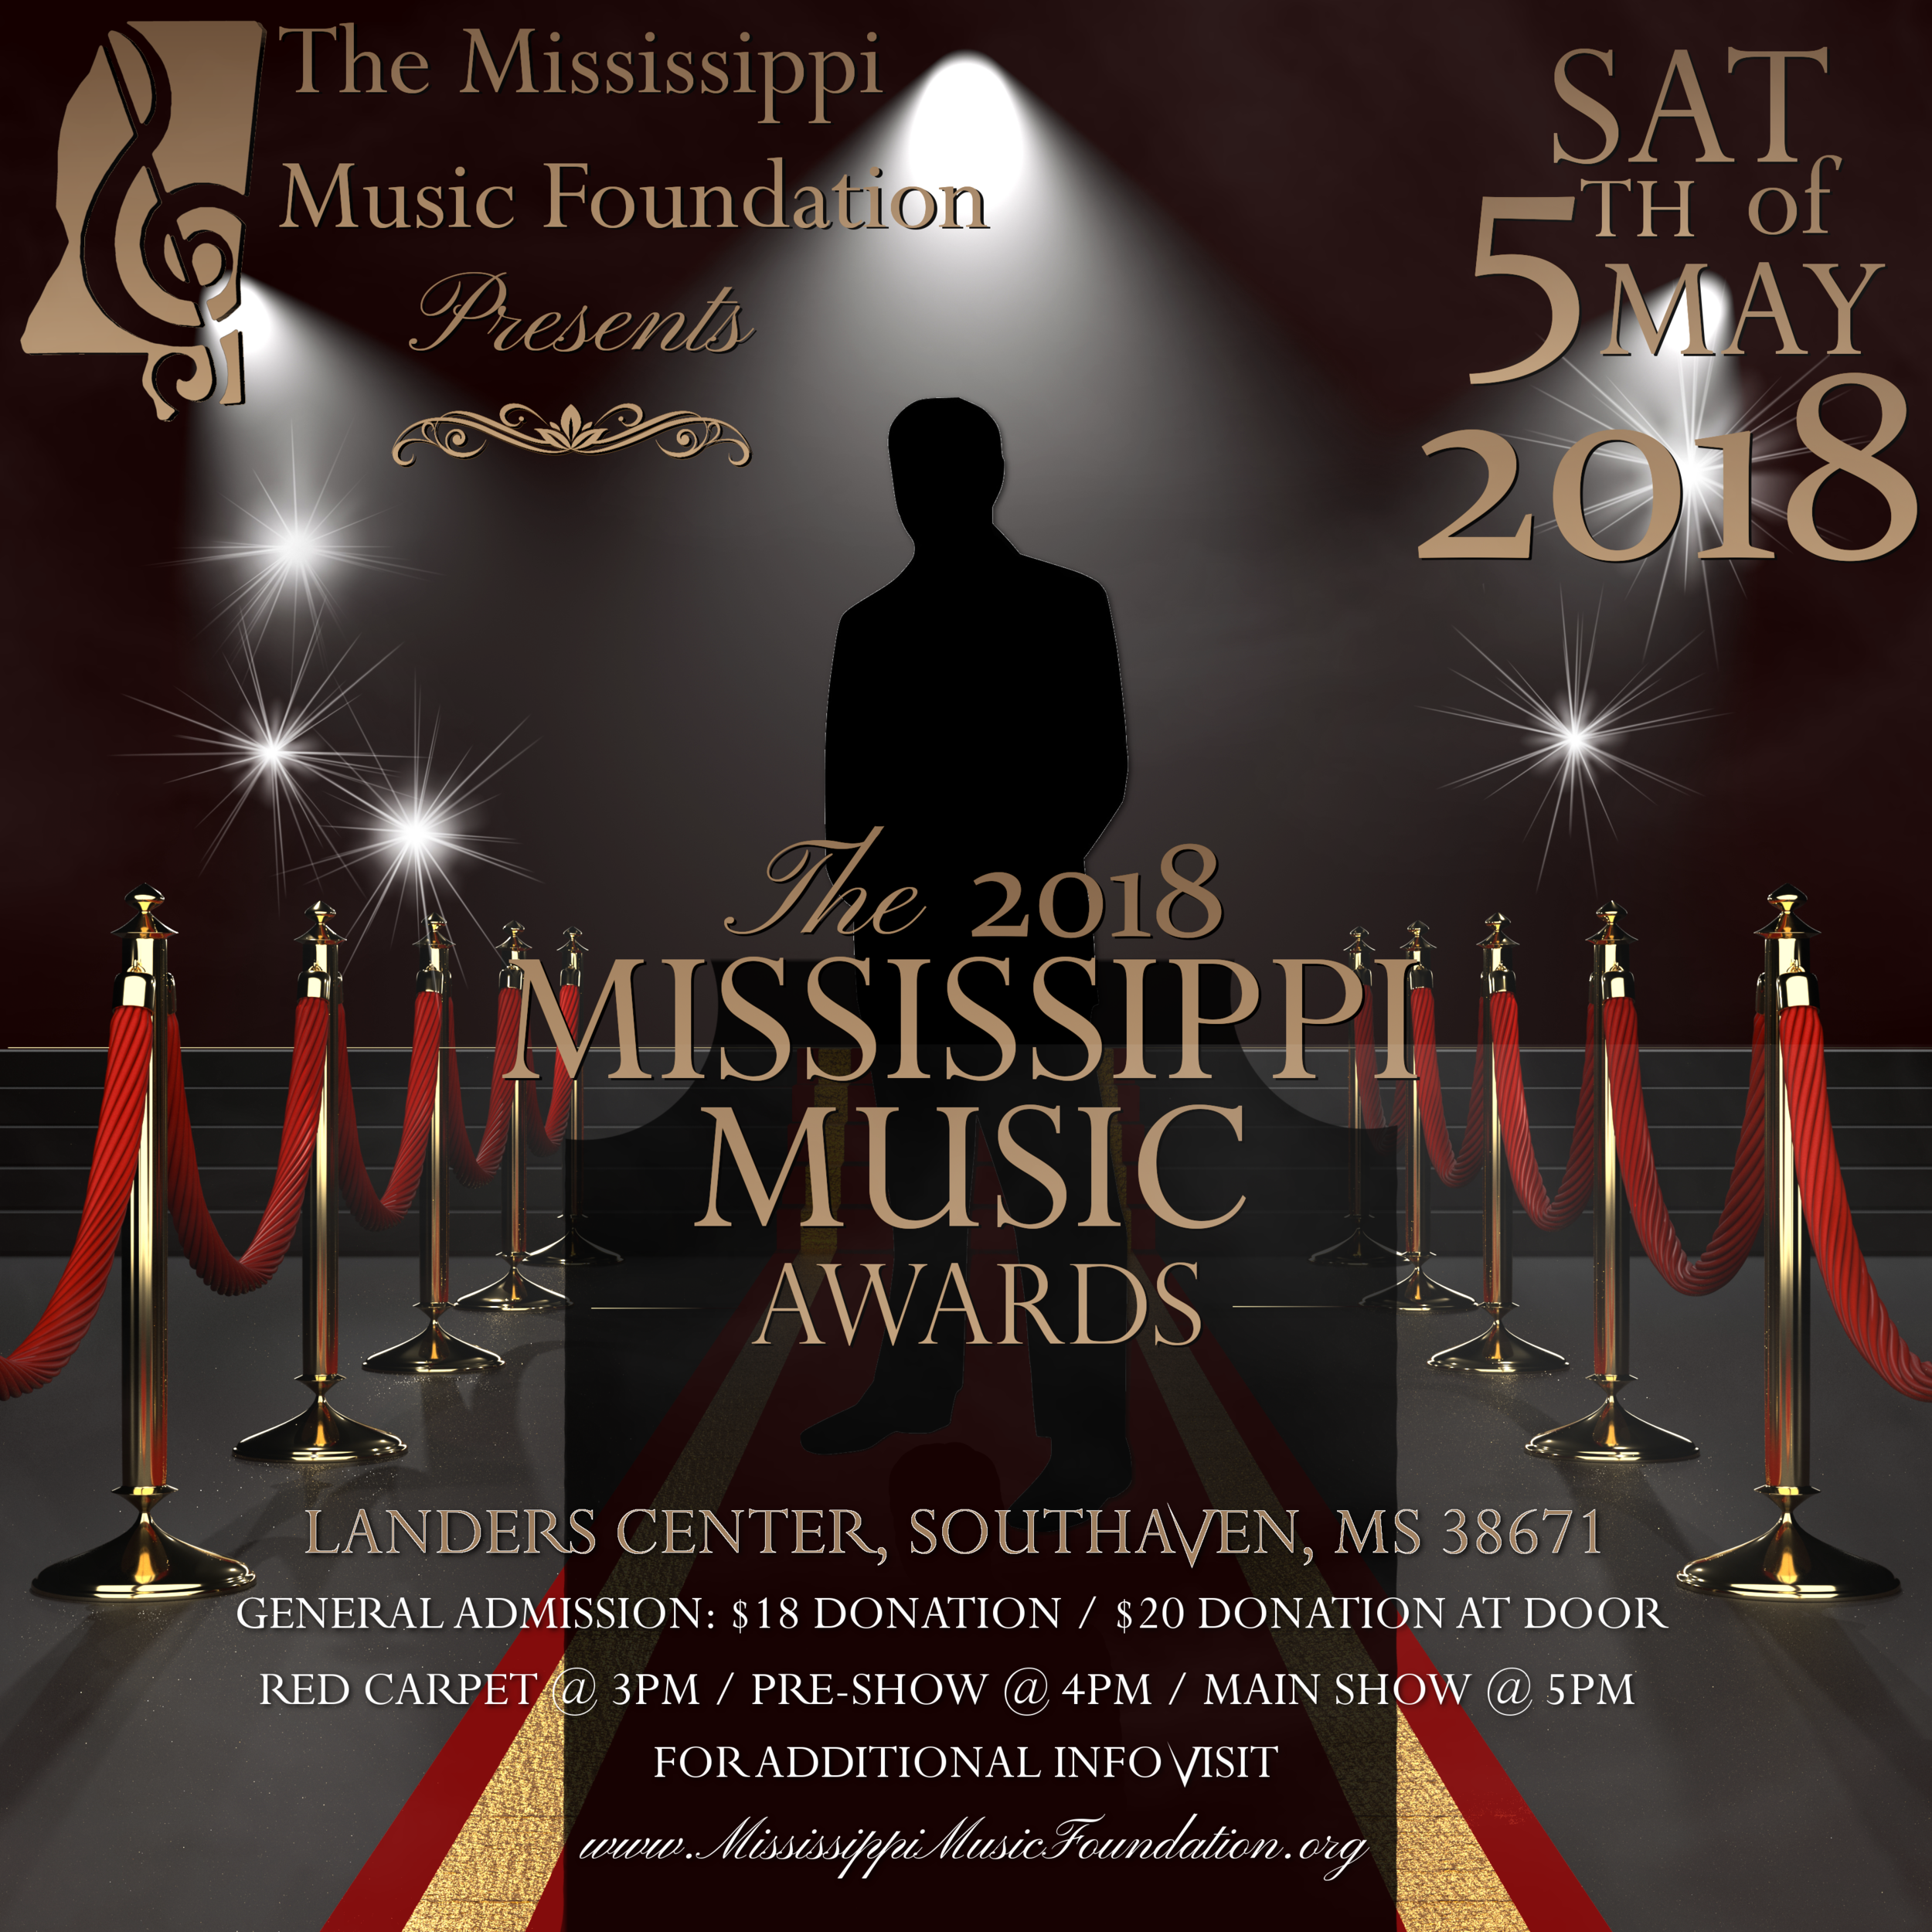 Mississippi Music Foundation (Red Carpet with Ropes) Flyer 2018.png